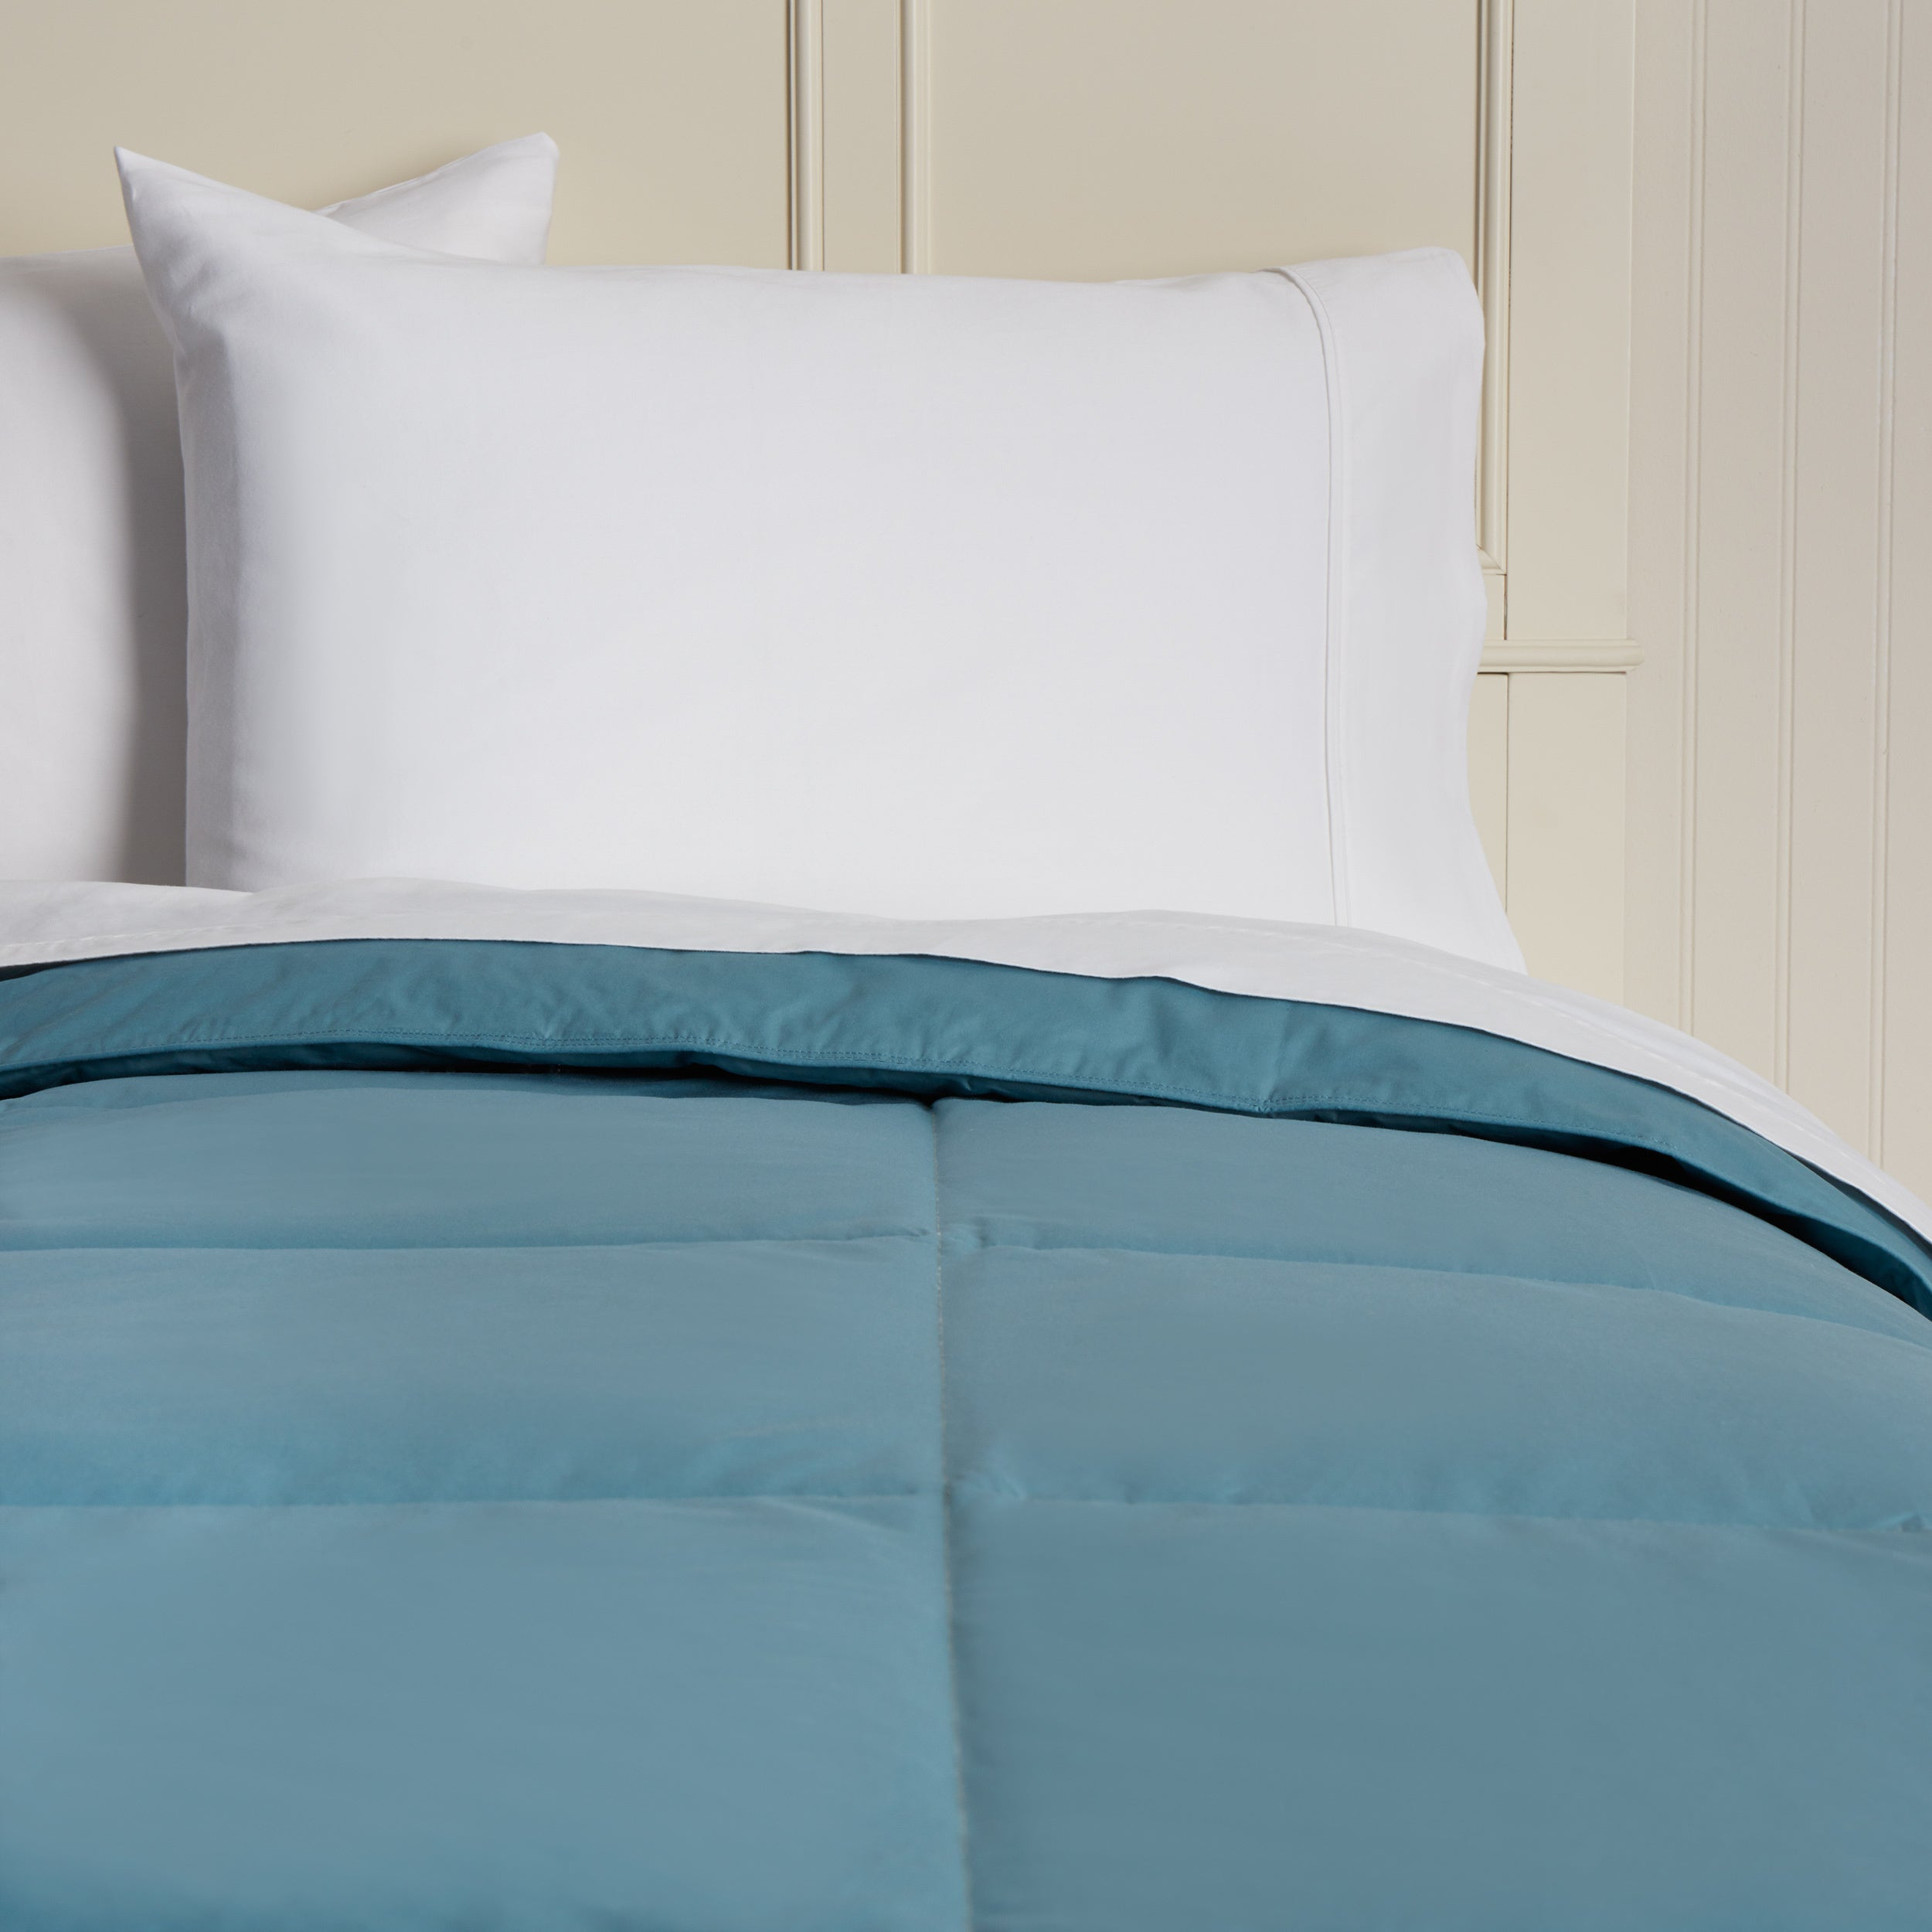 Hotel Madison Cotton Lightweight 15 Inch Box Stitch Colored Down Comforter Overstock 12049590